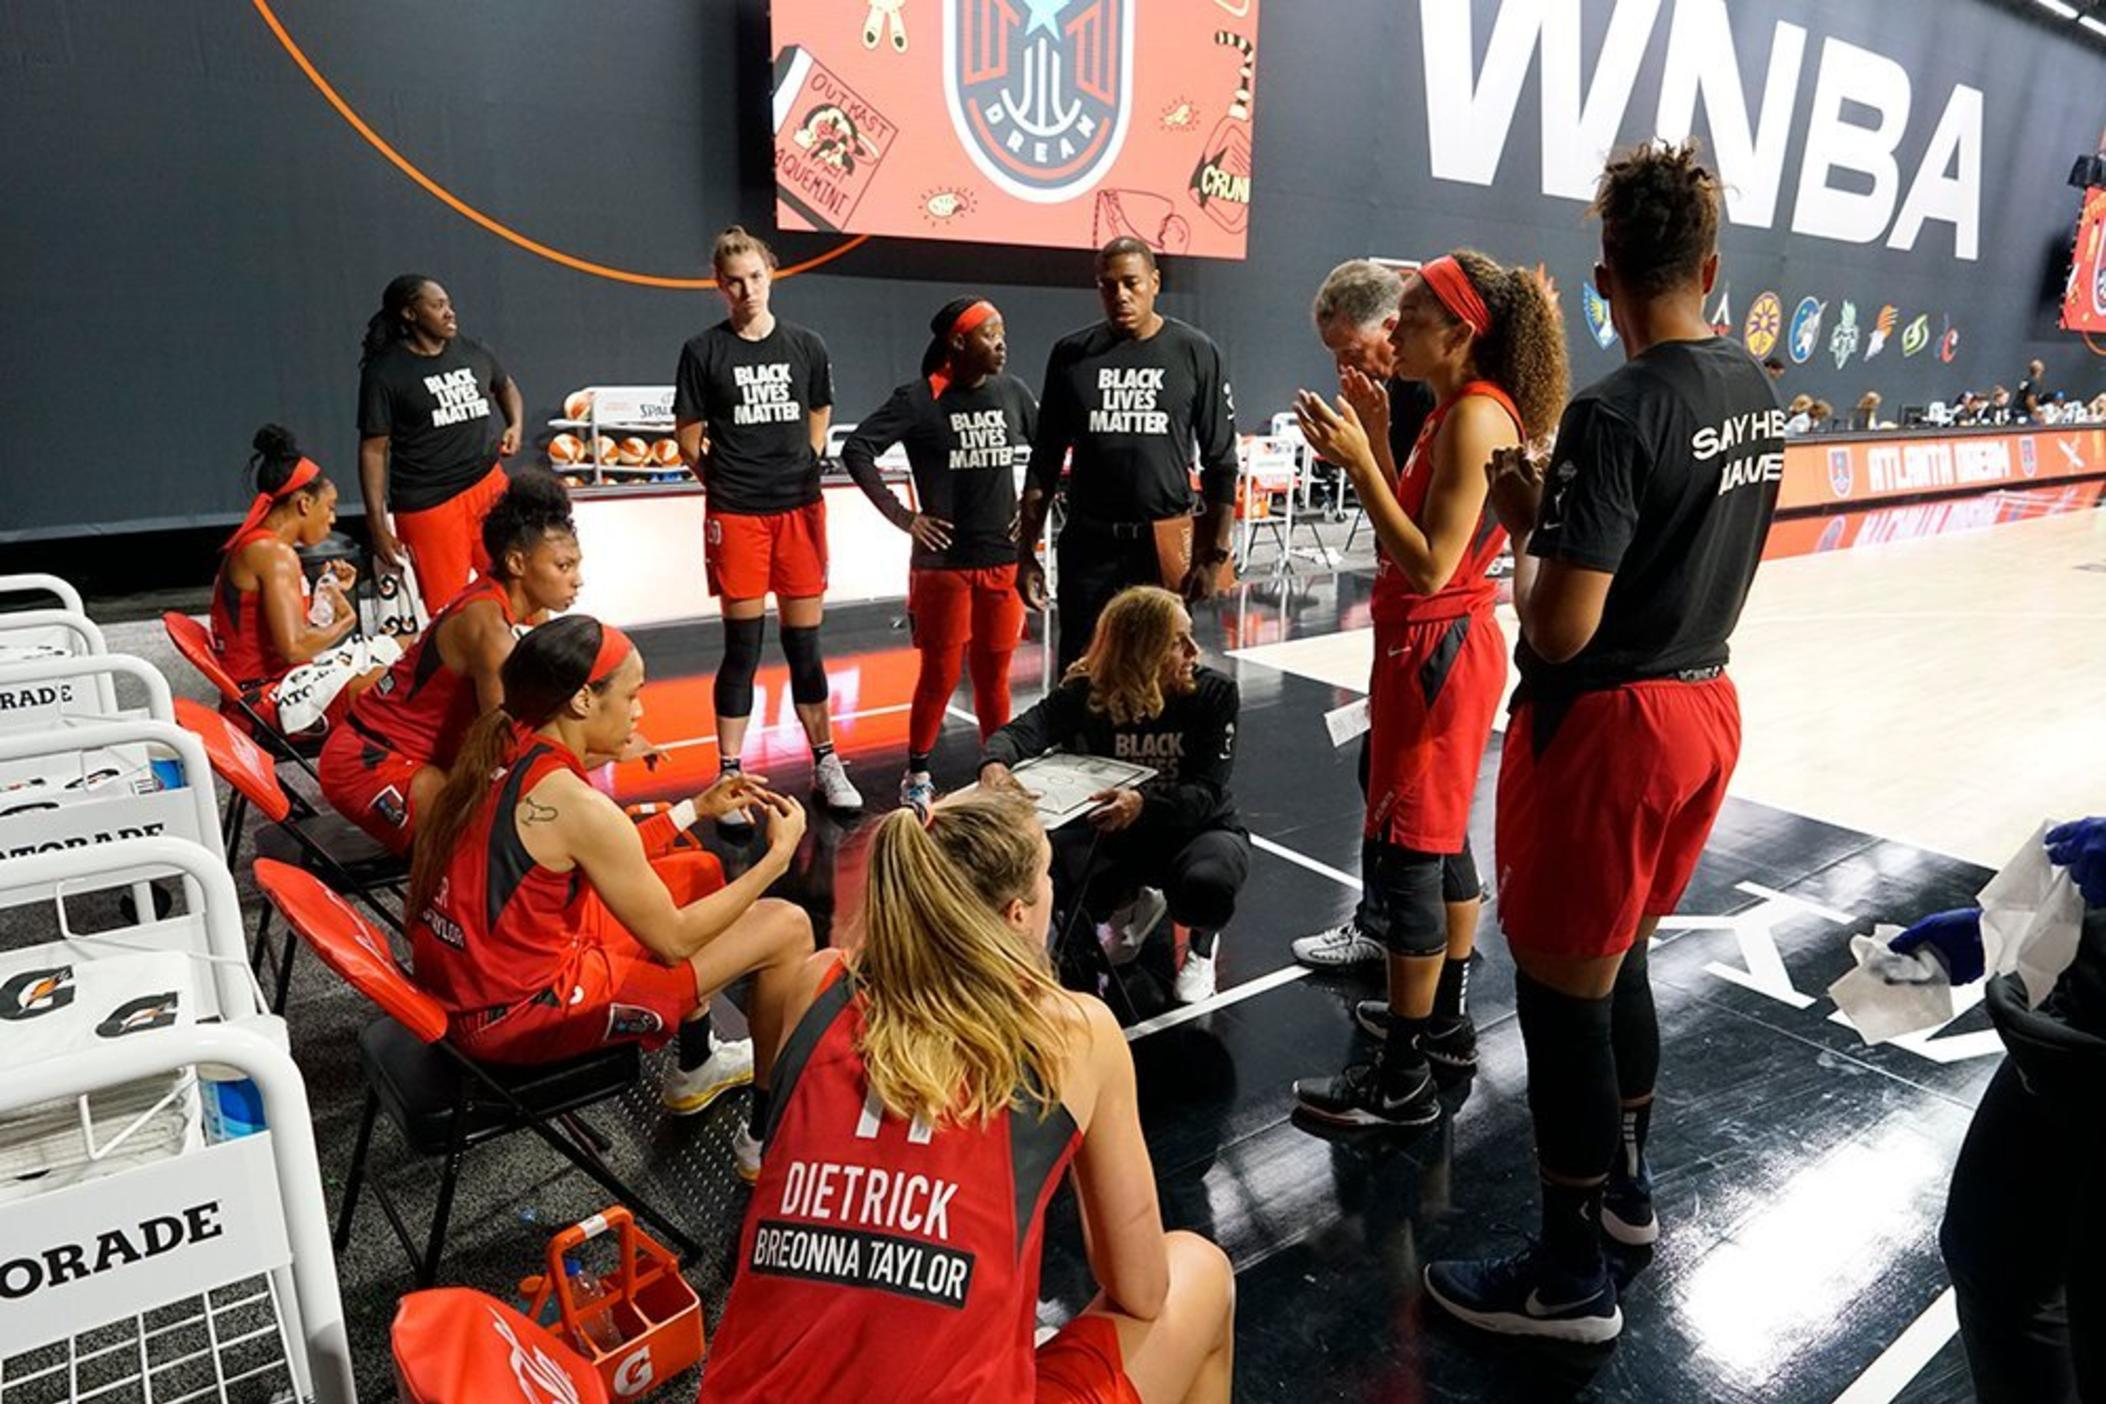 Members of the WNBA's Atlanta Dream wear clothing in solidarity with Black Lives Matter.